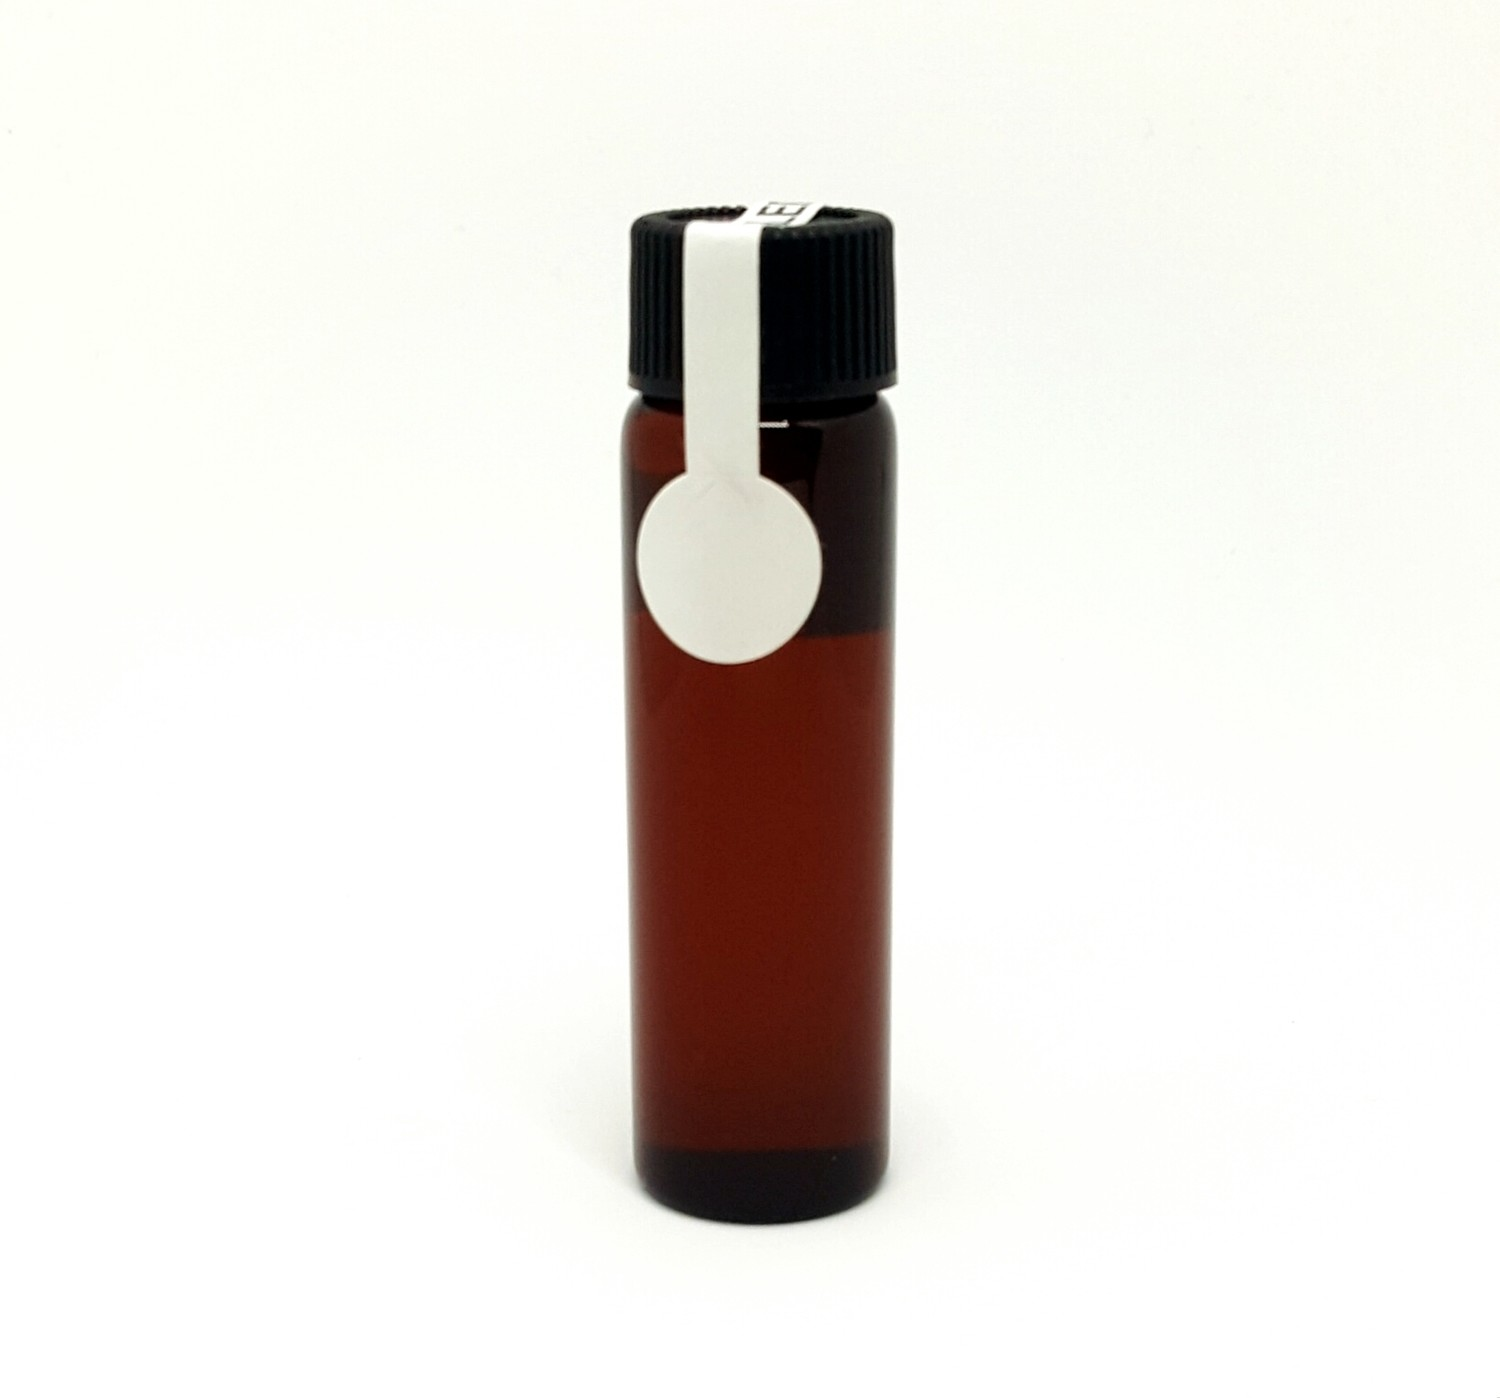 Vial Extract Oil - Super